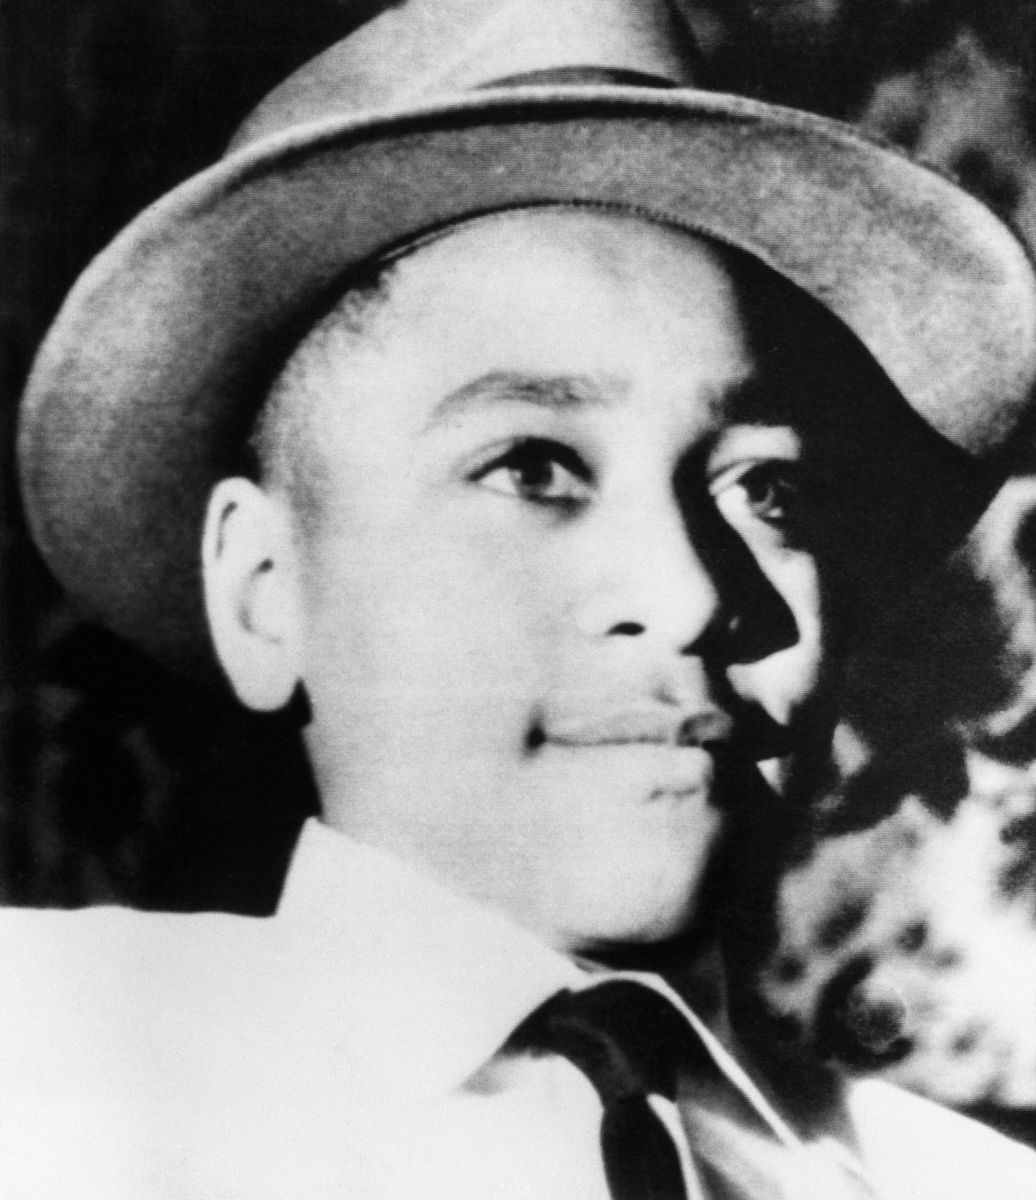 neogriot neo griot emmett till was brutally murdered in mississippi in 1955 his mother pointedly chose for